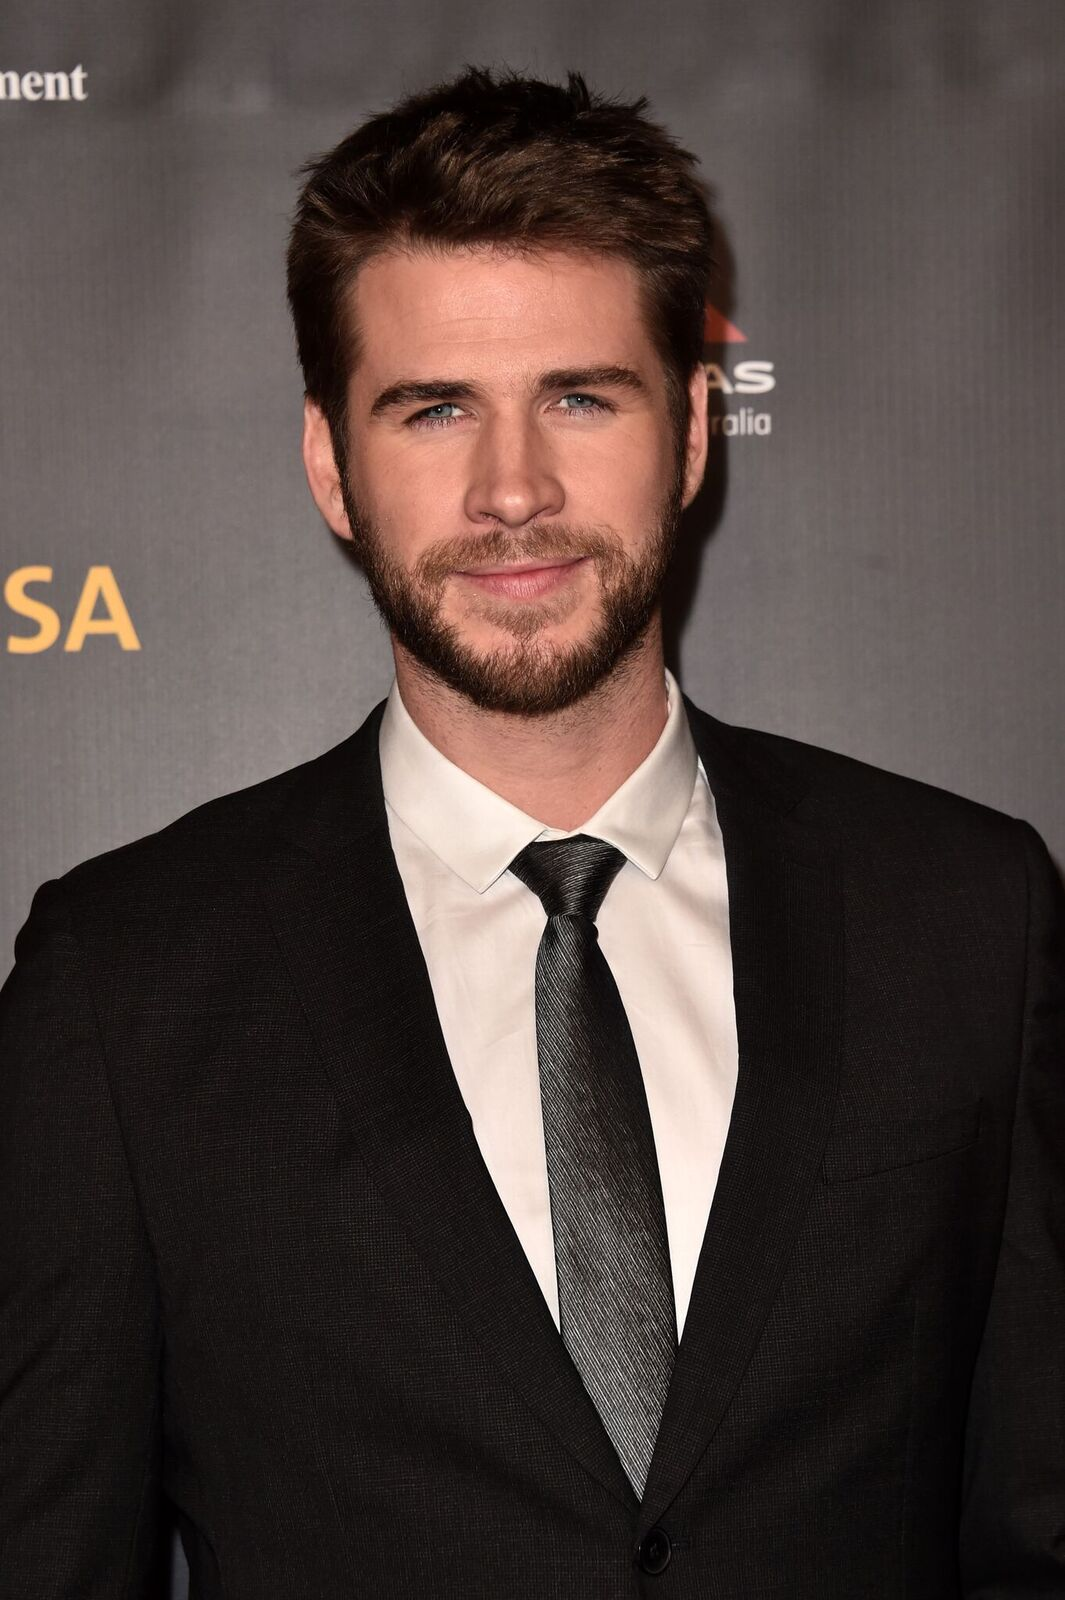 Liam Hemsworth attends the 16th annual G'Day USA Los Angeles Gala at 3LABS on January 26, 2019 in Culver City, California | Photo: Getty Images